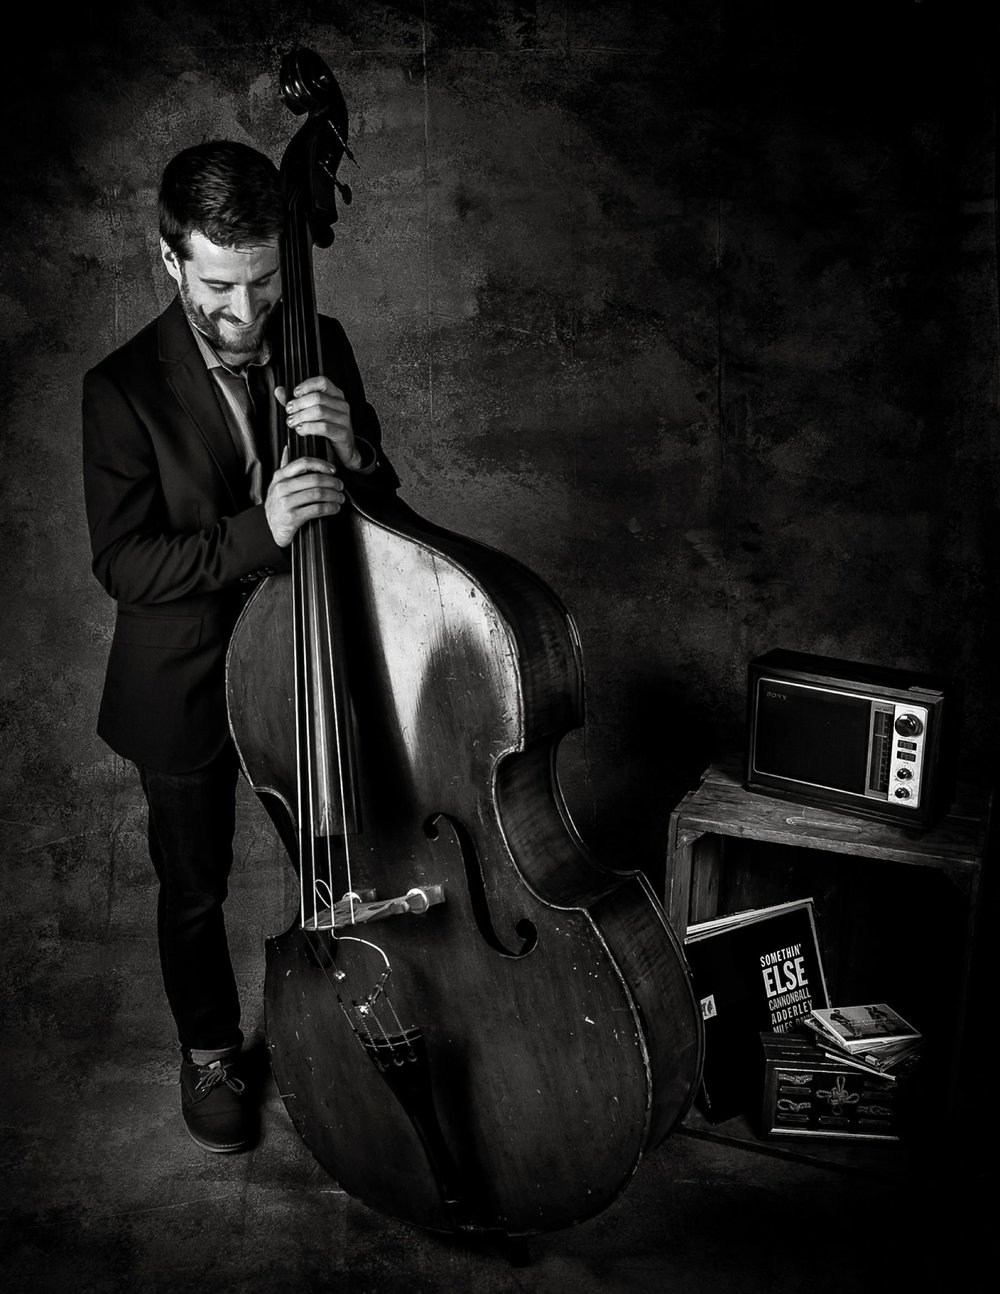 "Bassist, composer,  bandleader, and educator, - Zac Carson has developed a modern playing style that draws from the jazz tradition, incorporating many influences from rock, classical, and folk.  Currently based in Queens, NY, Zac is known for his lyrical playing, innovative compositions, and intricate grooves. Recent performance highlights include performing alongside Chris Brubeck, Randy Brecker, the band Evanescence, and the premier of Harry Connick Jr.'s musical, Happy Elf.  As a classical bassist, Zac has steadily performed with the Flagstaff Symphony, West Valley Symphony, and the San Juan Symphony.Zac's debut album, ""Between Two Worlds,"" is performed by an all-star band and showcases Zac as a composer.  The compositions surpass standard jazz forms, creating a dramatic, exciting, and powerful listening experience.  Through its expressive motifs, ""Between Two Worlds"" is a thematic cohesiveness representing the polarization of two opposing realities. Zac's most recent band, FutureShift, is a collective of progressive musician based in NYC.  Using improvisation to push the boundaries of music, FutureShift is creating an ever relevant and relatable modern jazz style."